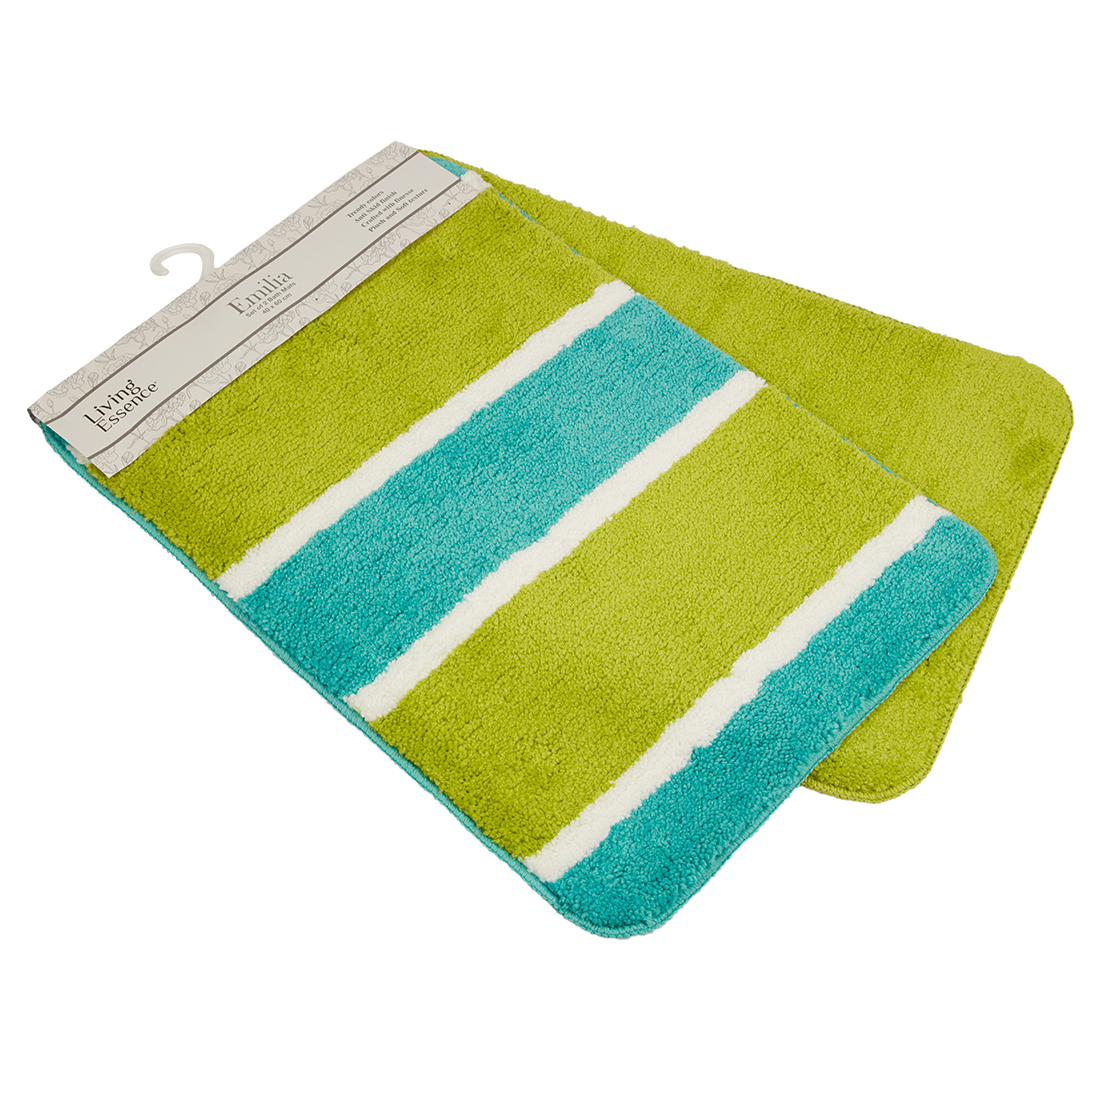 Set of 2 Bathmats Teal and Citron Bath Mats in Teal Citron Colour by Living Essence